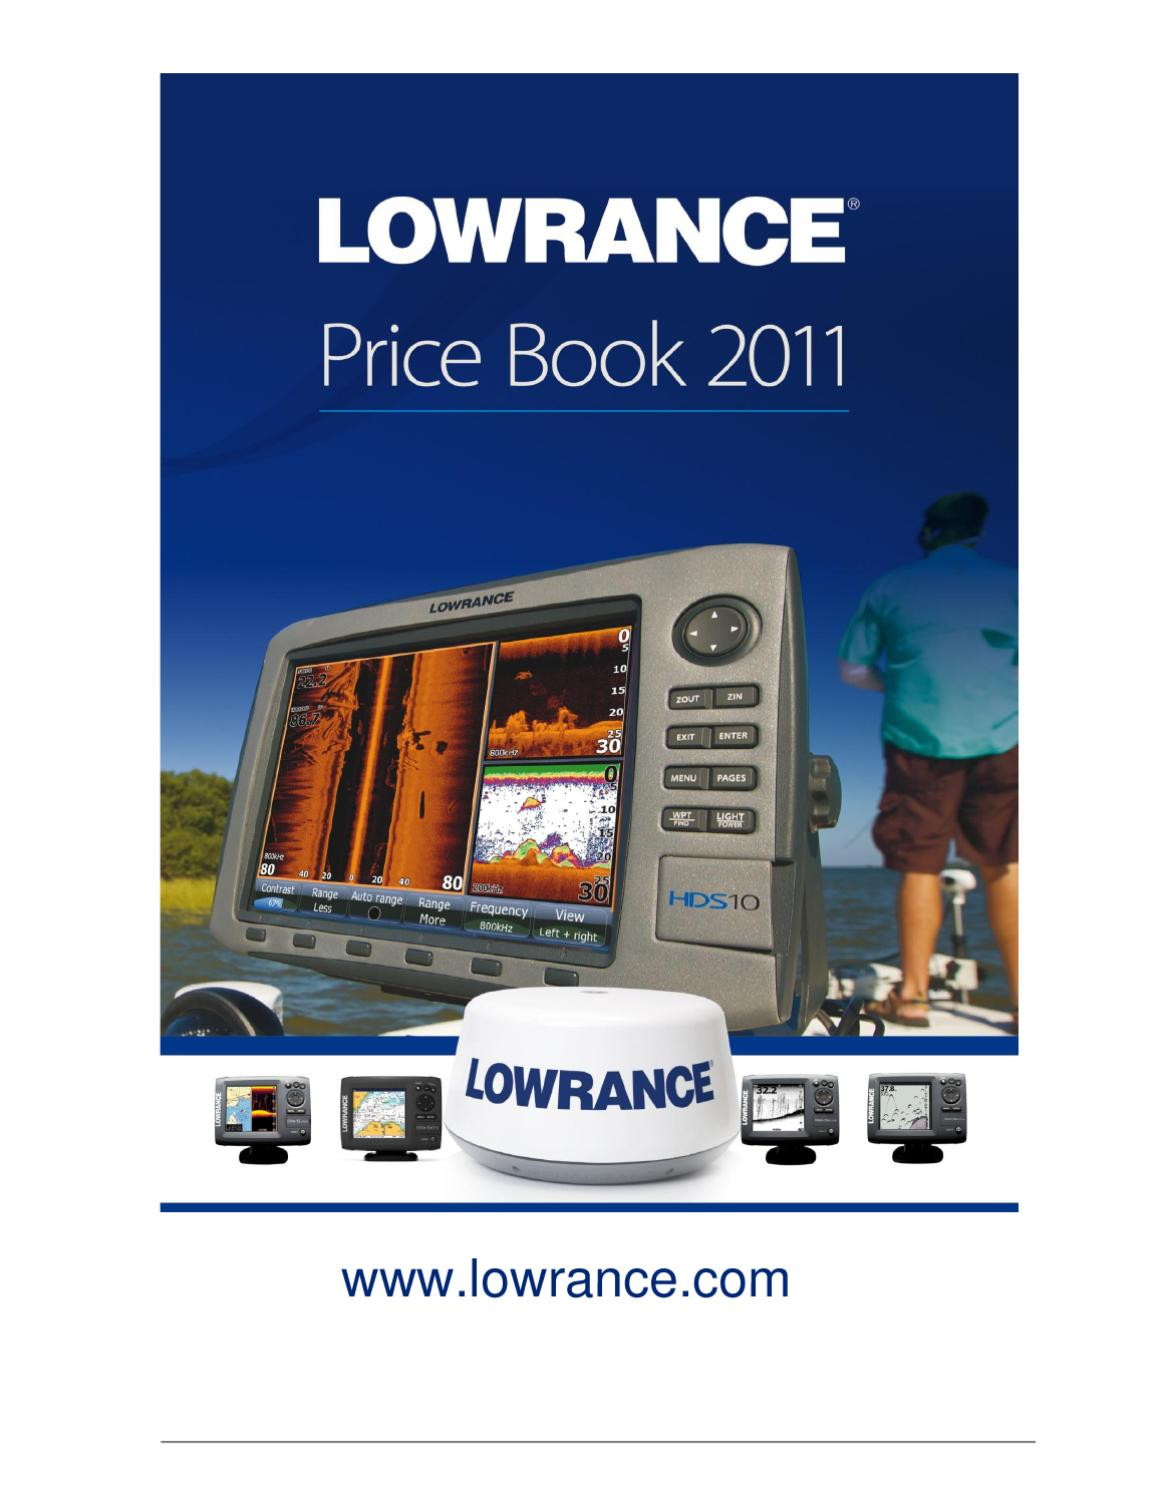 2011 Lowrance Price Book By Roland Silluta Issuu Rj45 Wall Jack Wiring Diagram Also Elite In